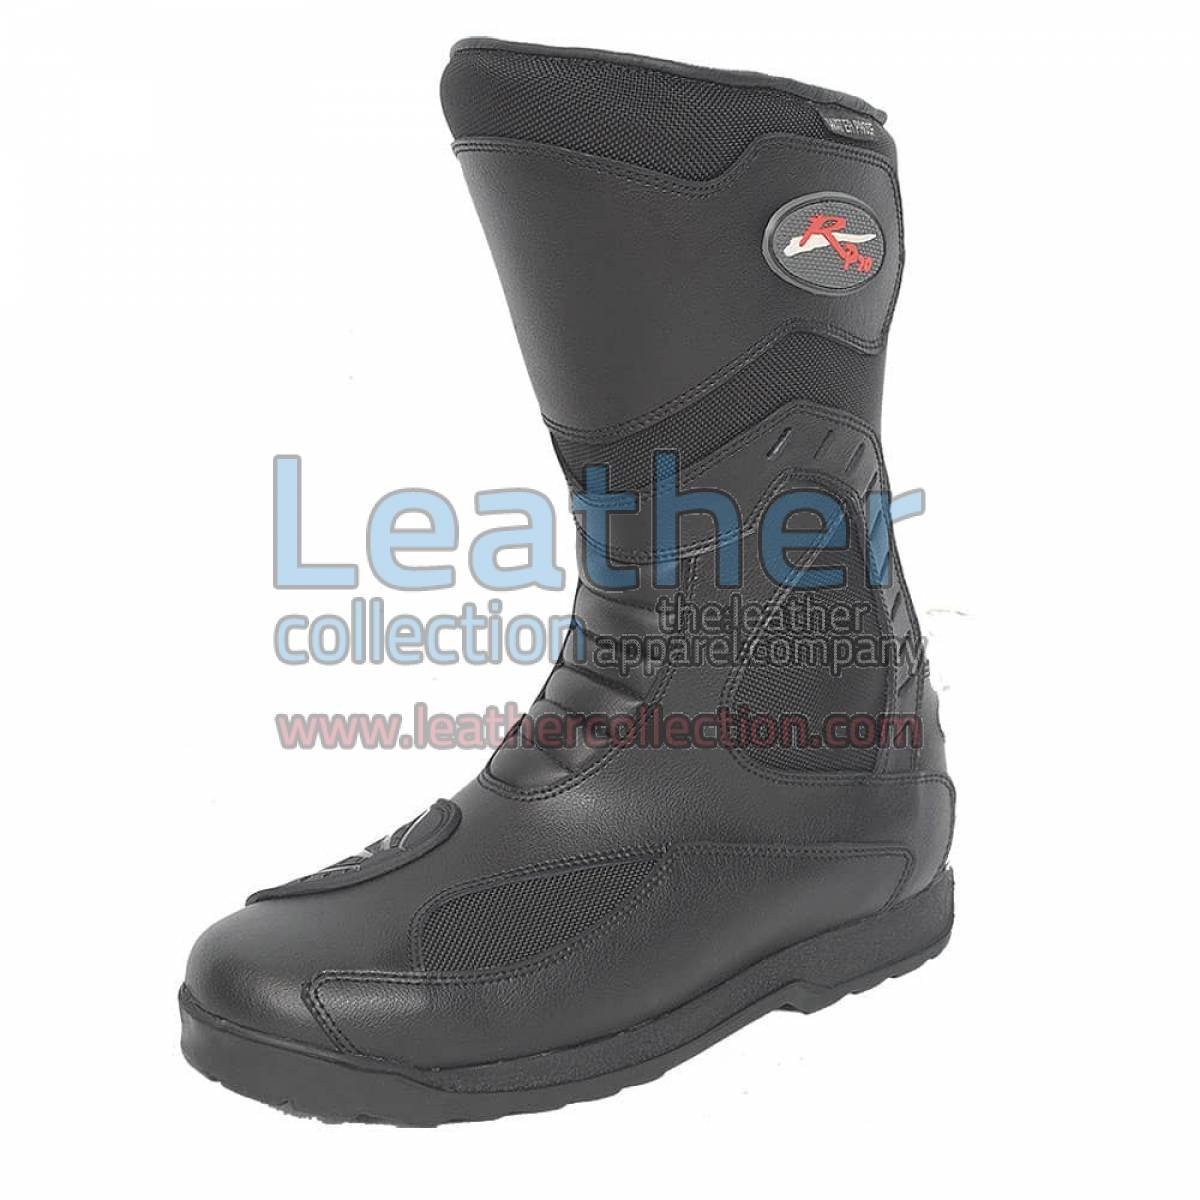 Tour Leather Biker Boots